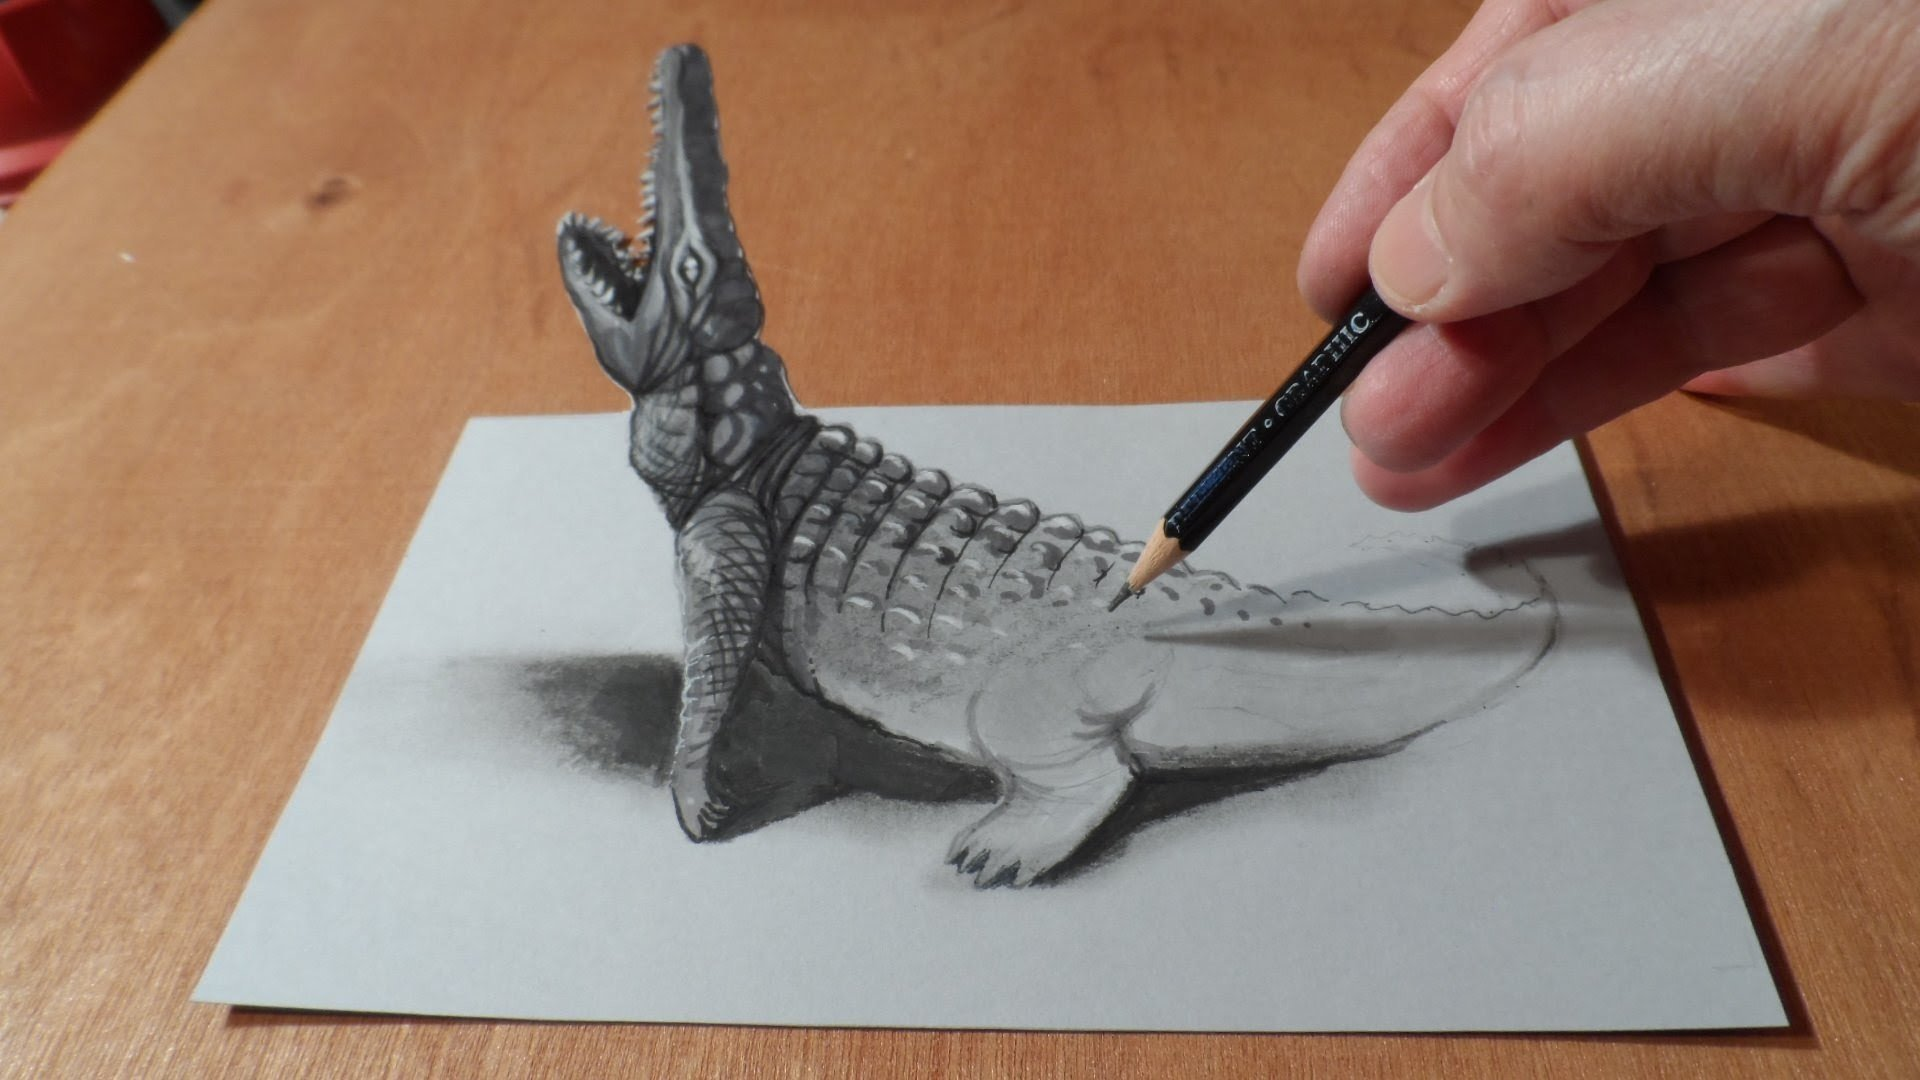 trick-art-drawing-3d-crocodile-dn3m-o.jpg